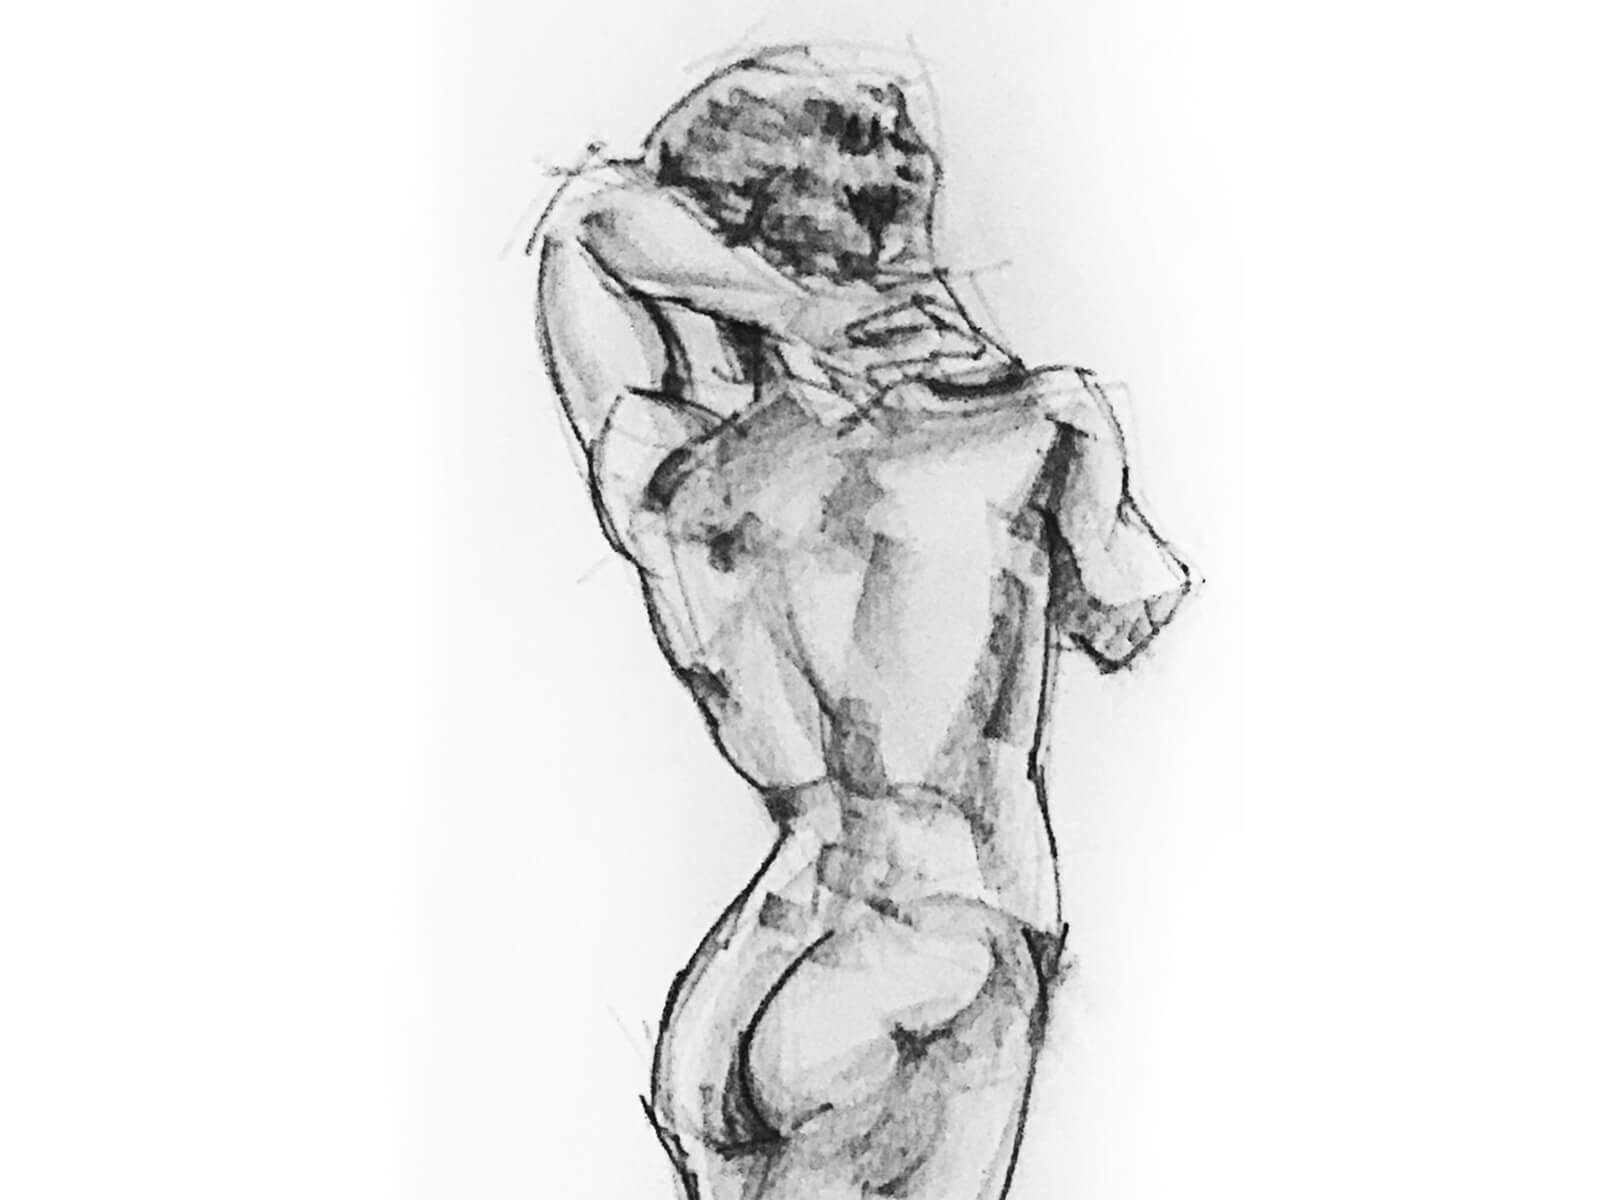 A sketch of a man with his back to the artist, his arm behind his head